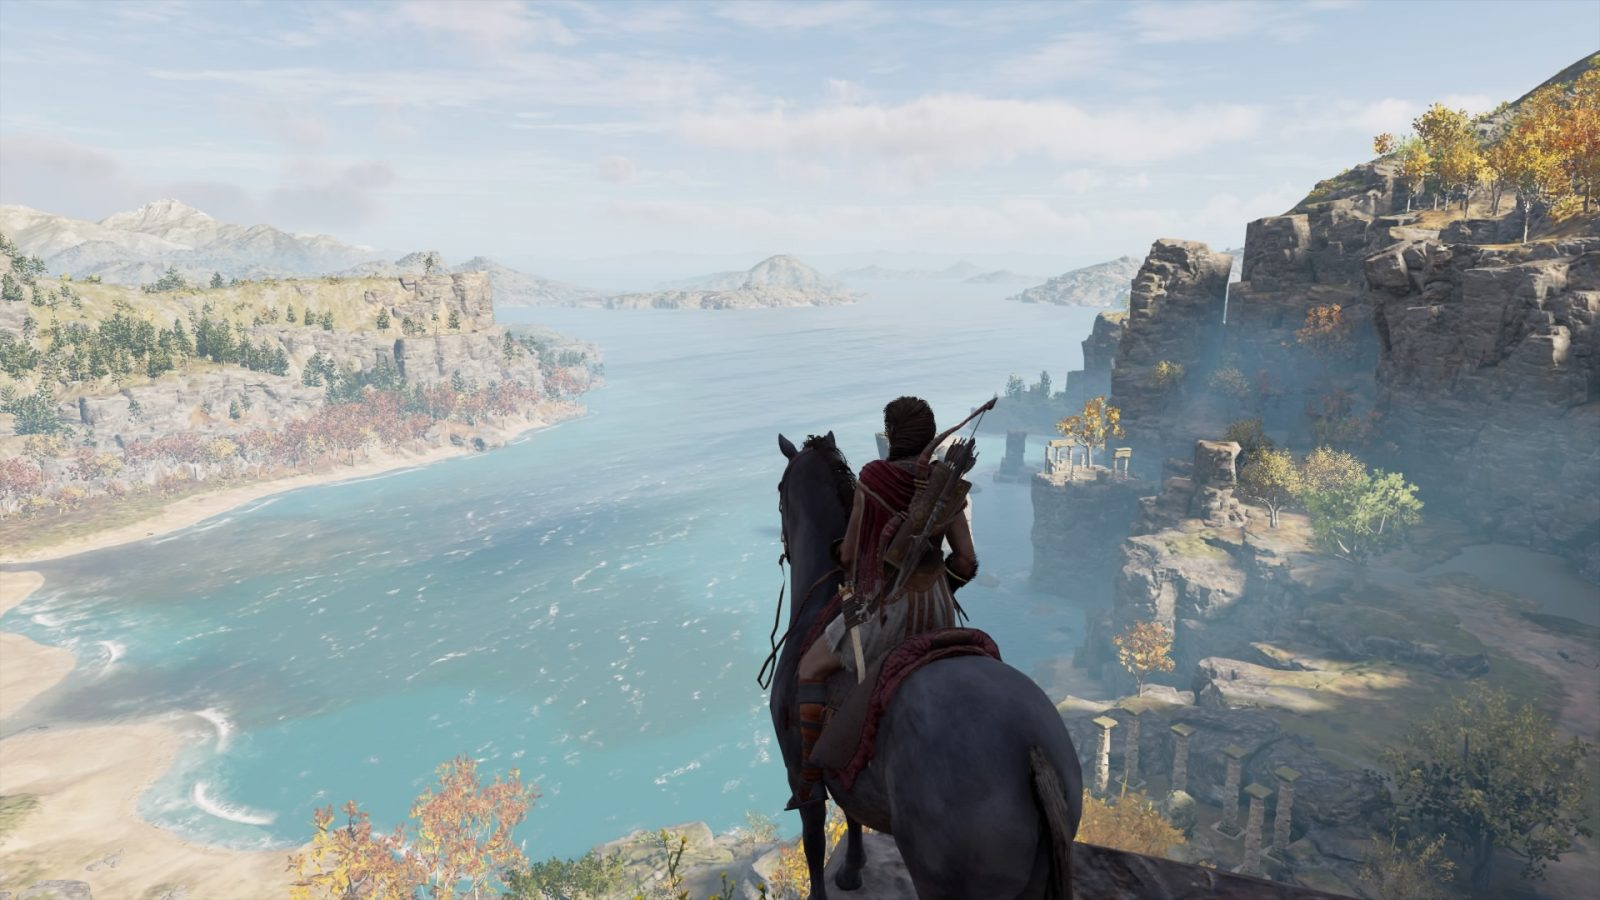 One of the best open-world video games on PC